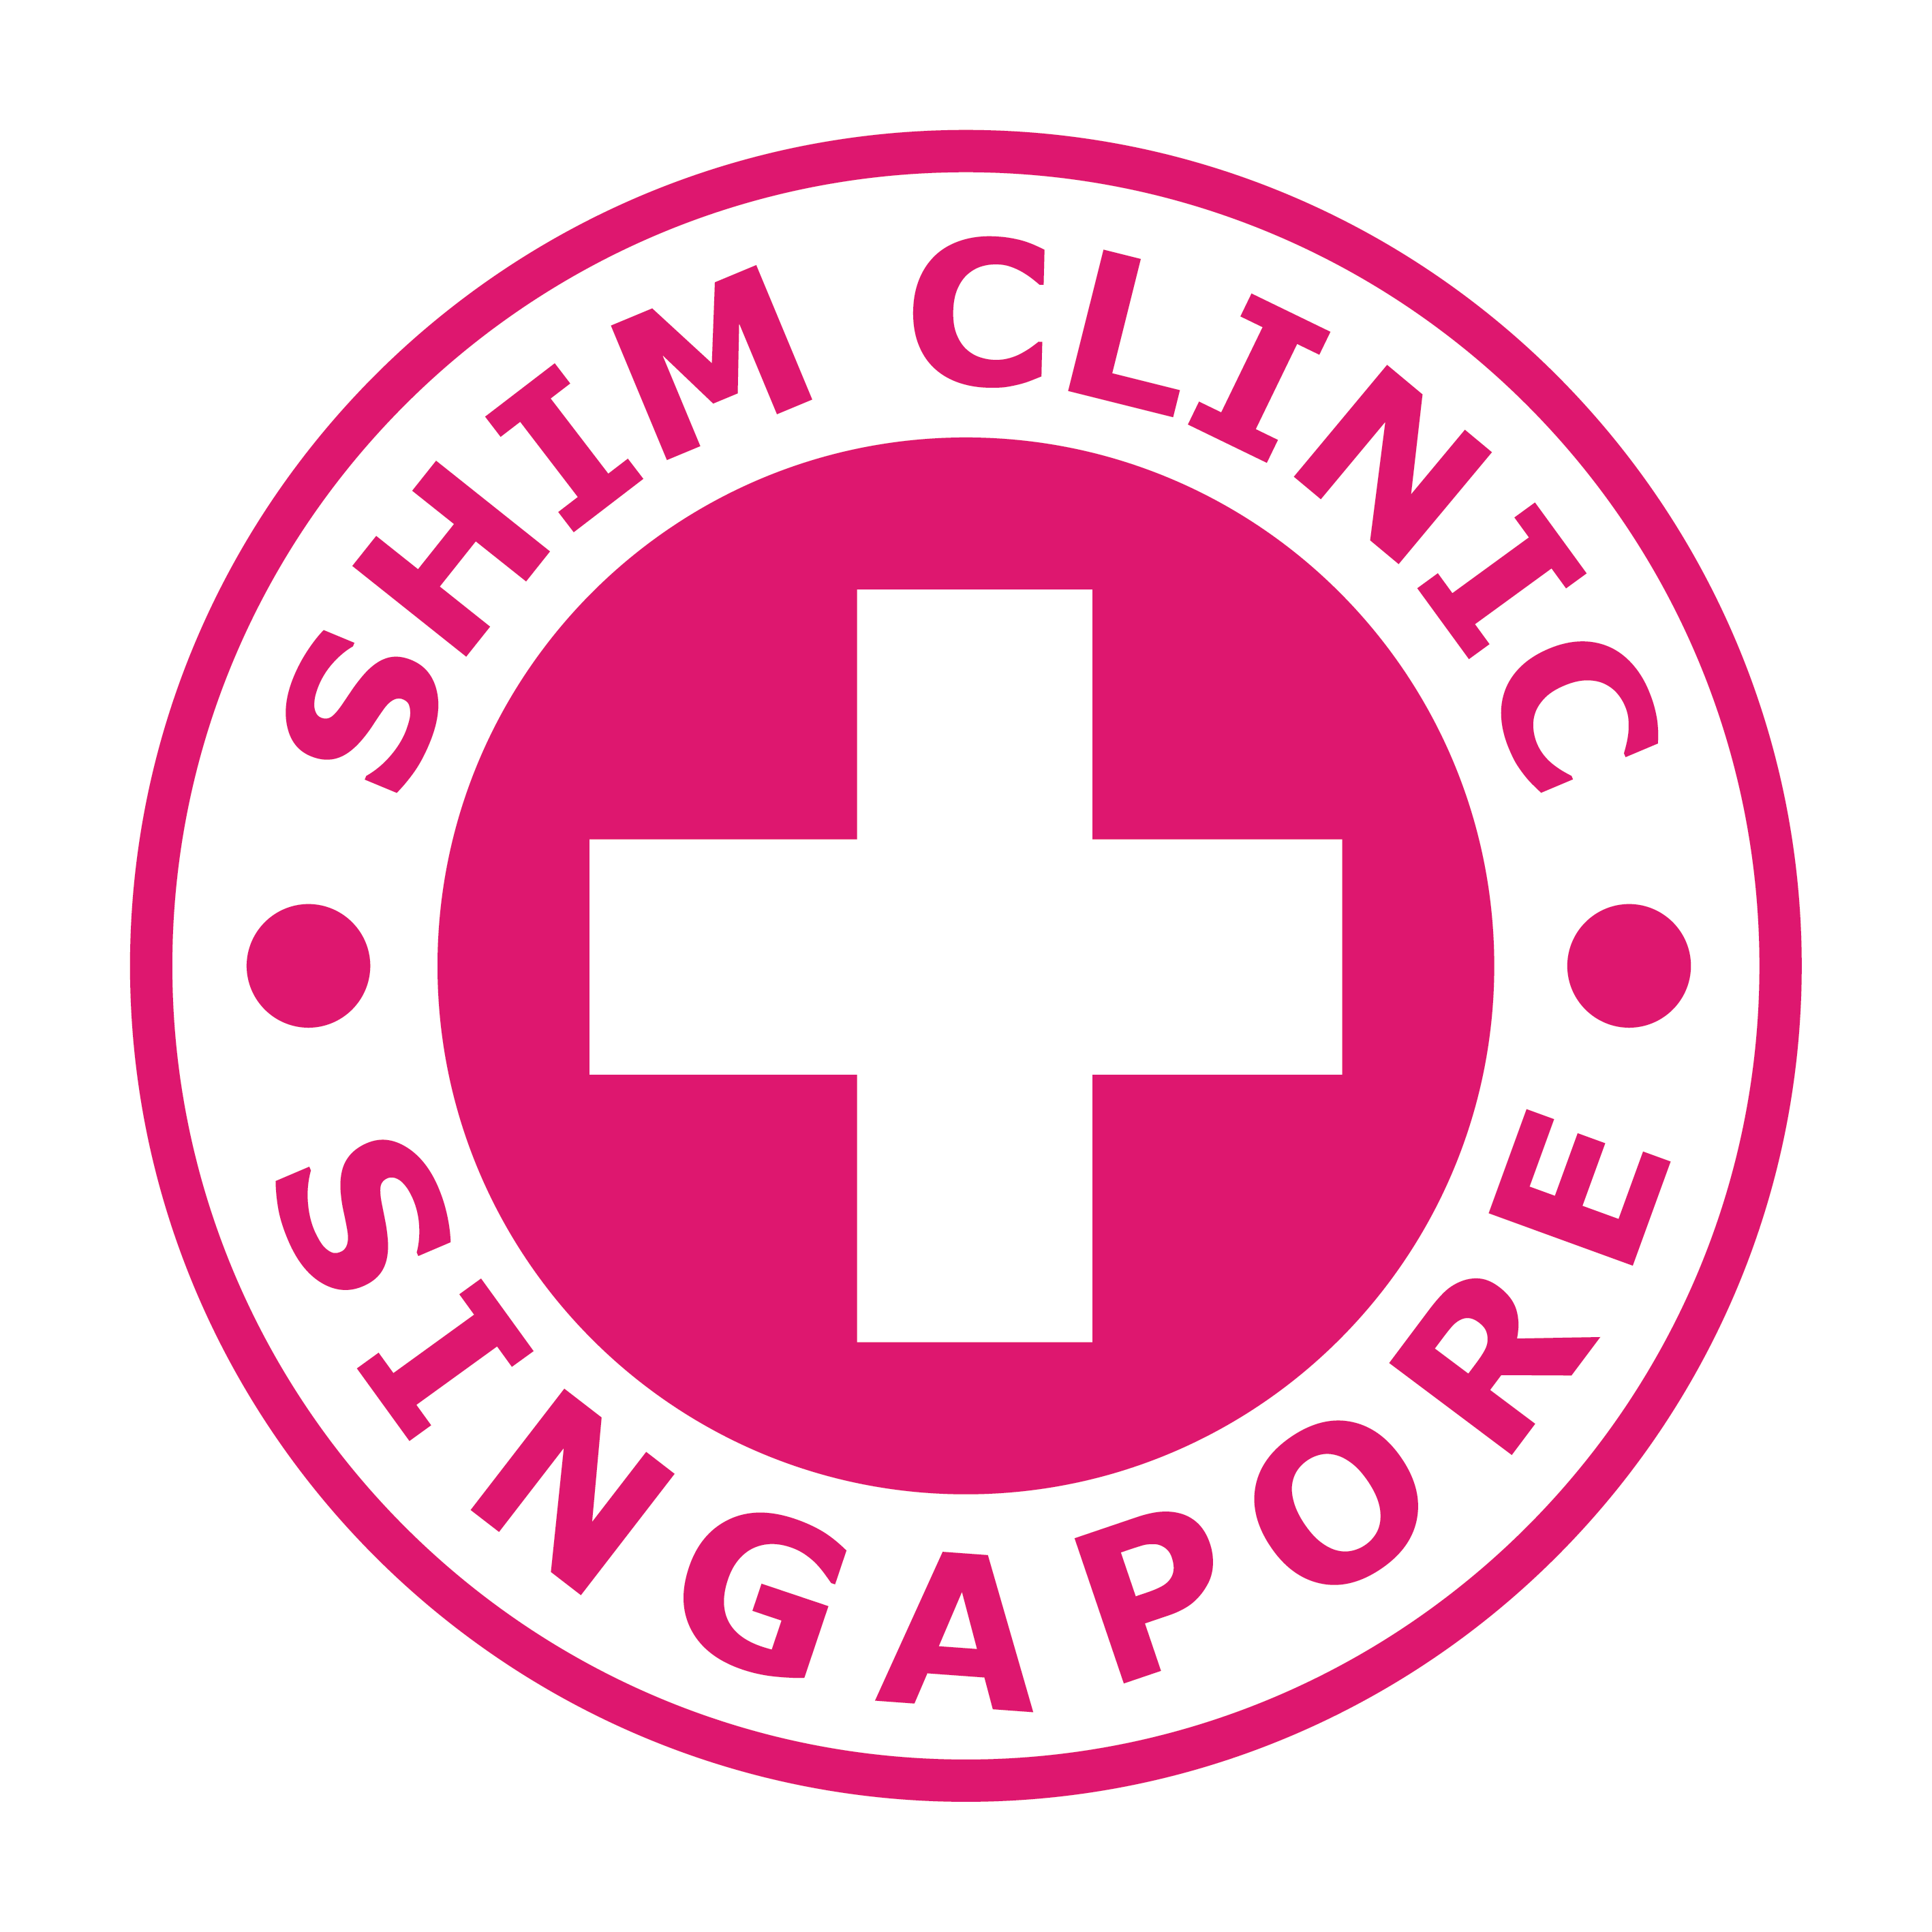 Shim Clinic Provides Affordable HIV Treatment in Singapore